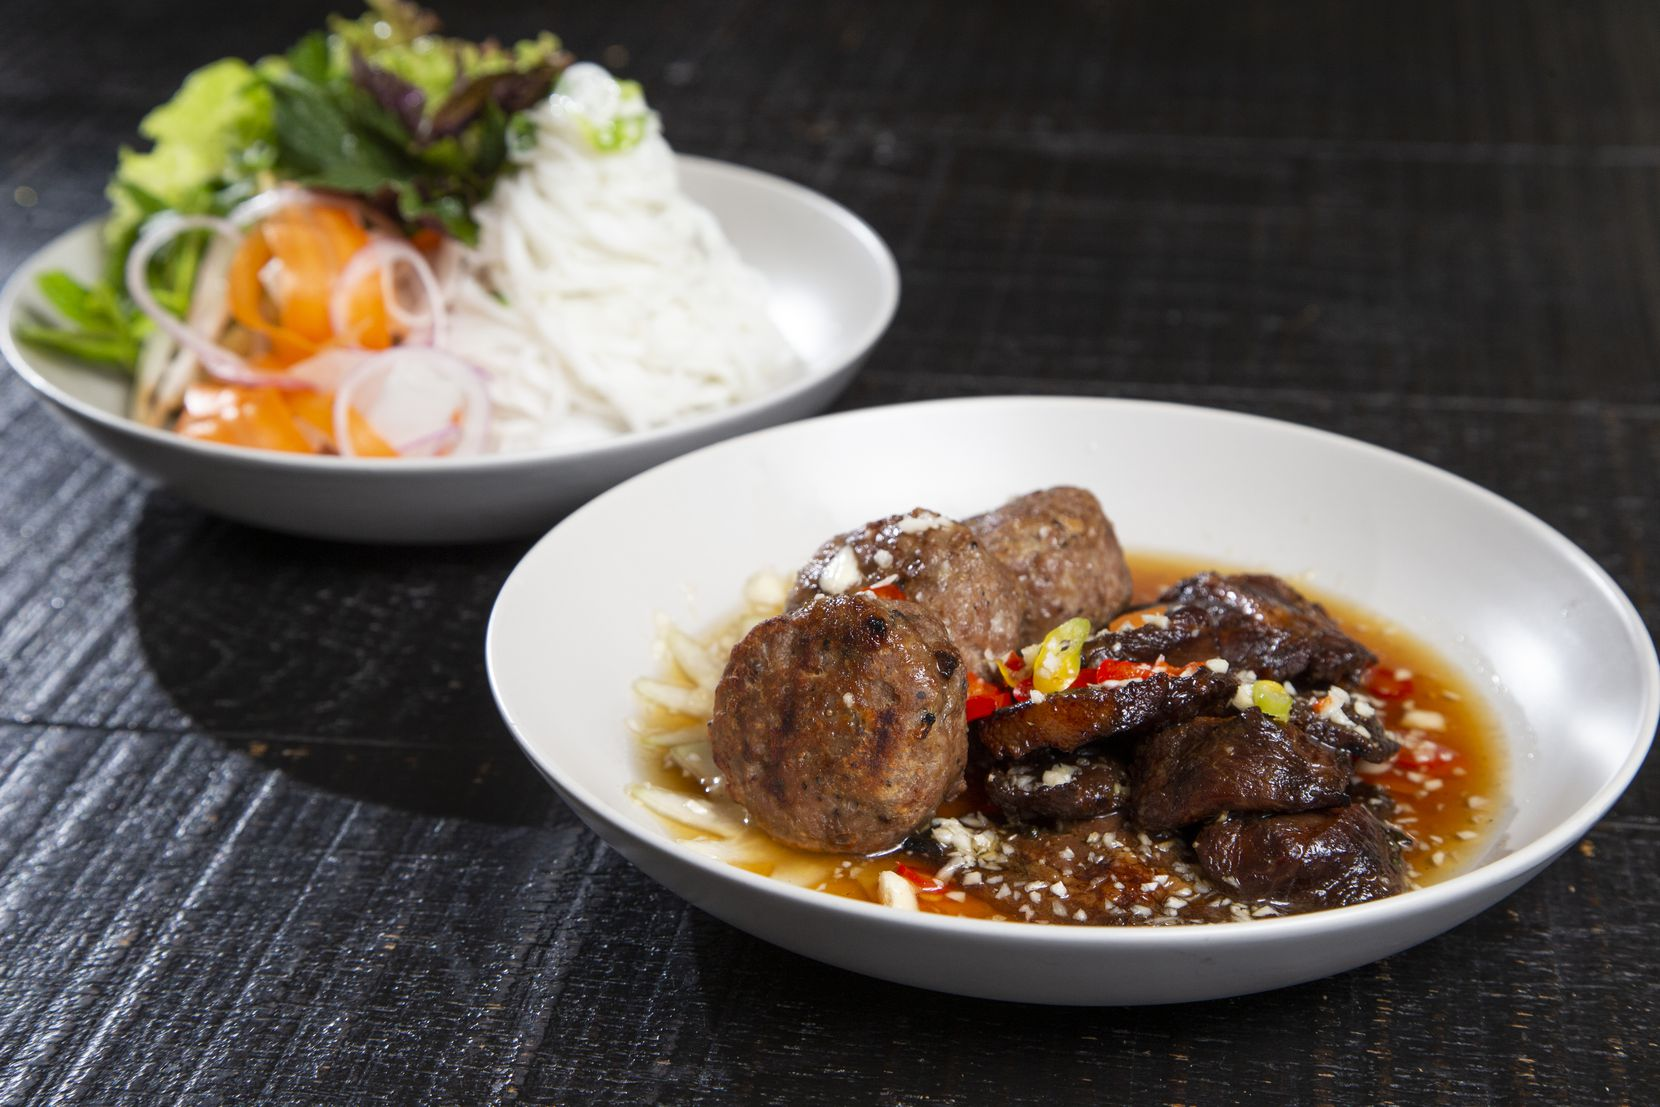 Bun Cha Hanoi, grilled pork patties with grilled sliced pork served with vermicelli noodles with herbs and nước chấm.